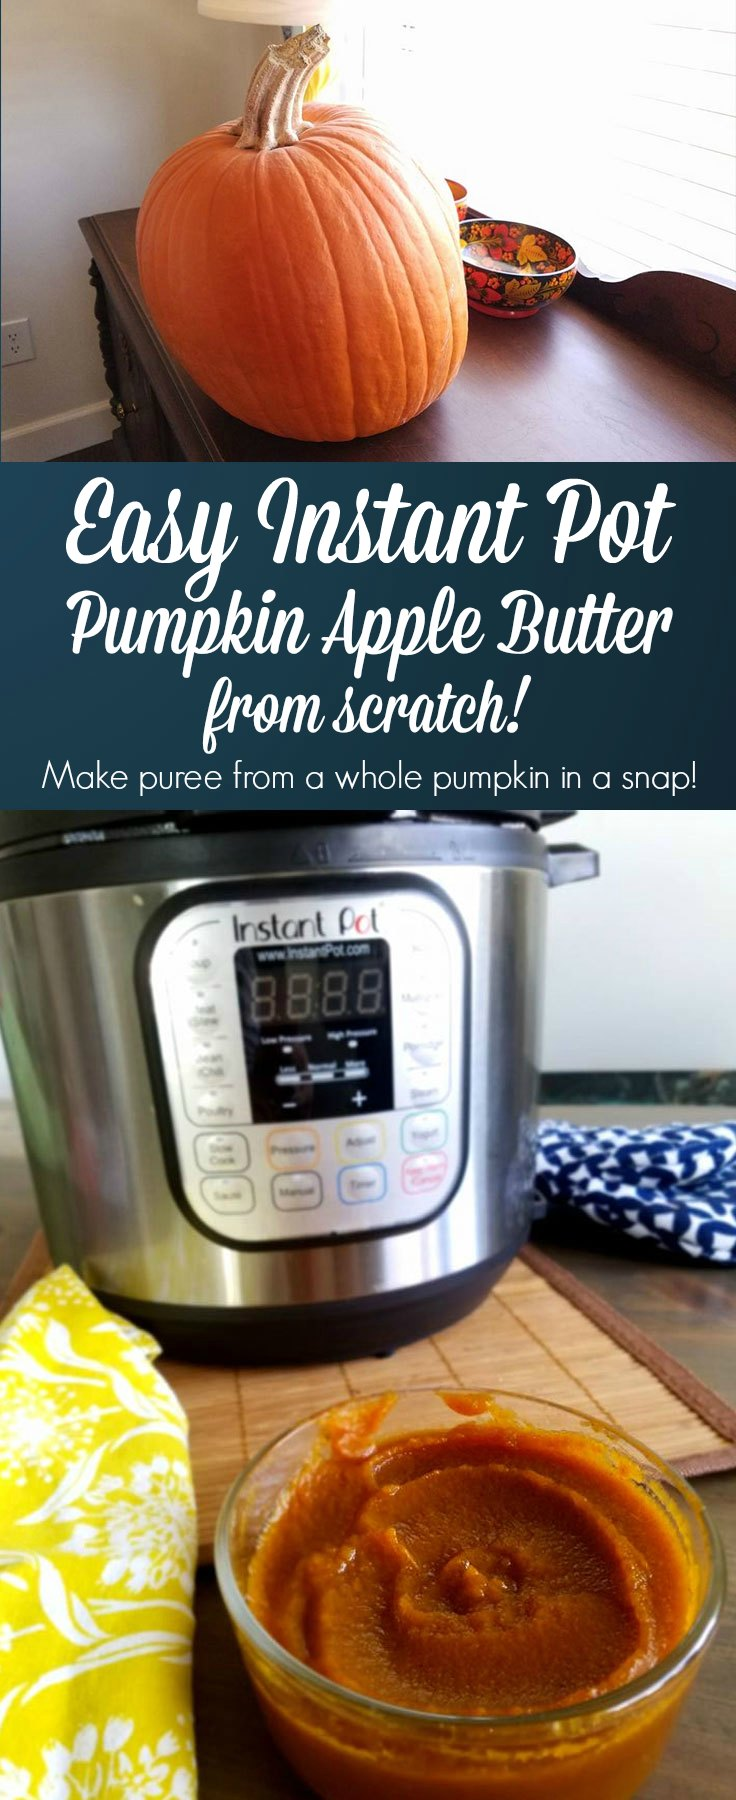 pumpkin apple butter in the instant pot from scratch